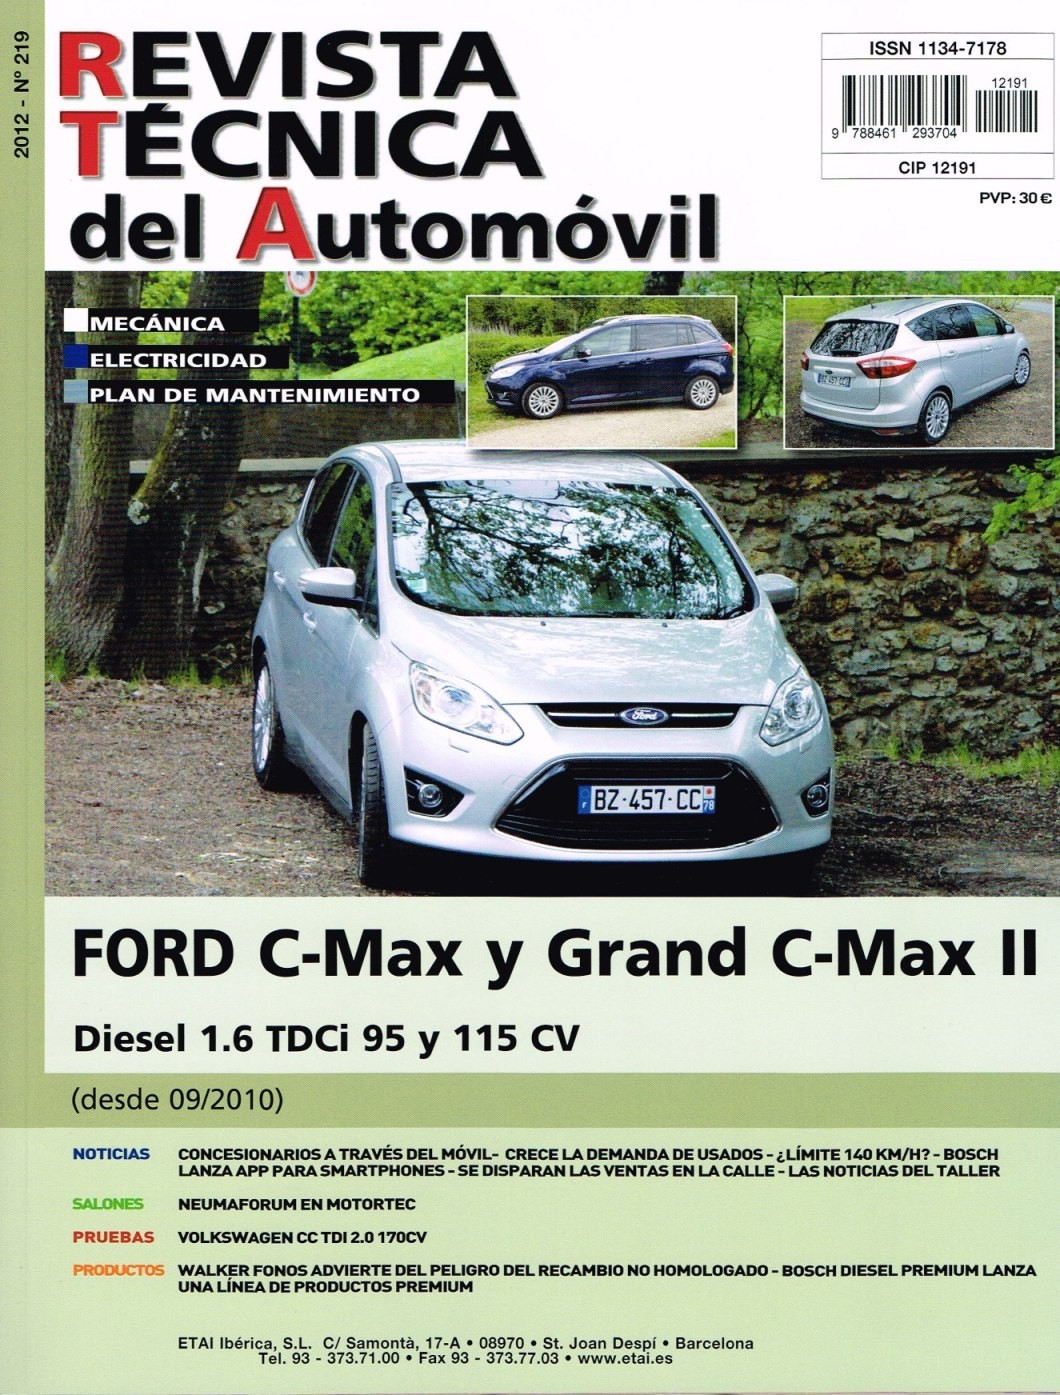 manual de taller ford focus c